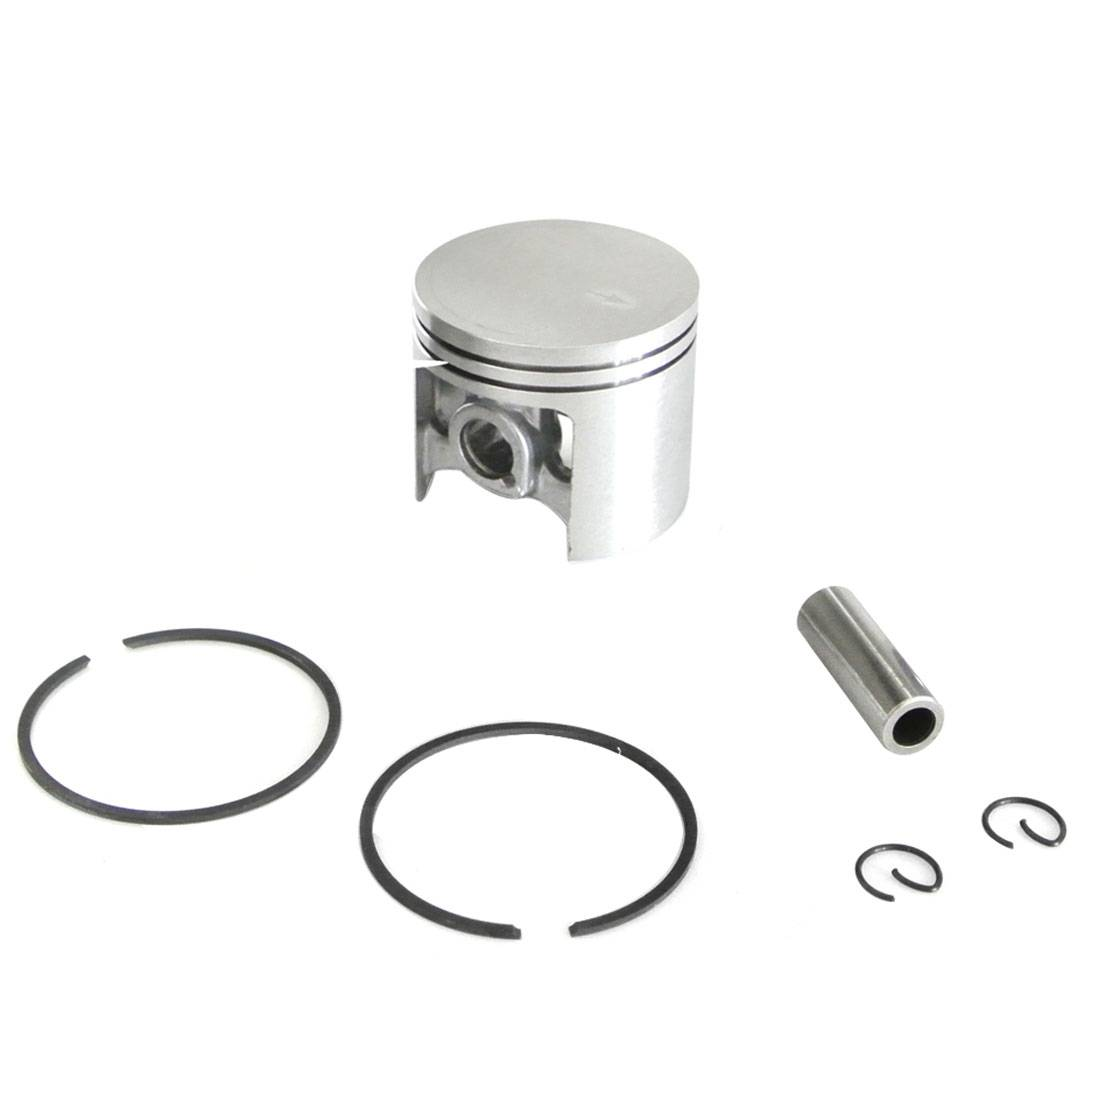 47MM CYLINDER PISTON RINGS FOR STIHL MS361 MS361C MS341 CHAINSAW 1135 020 1202 50mm cylinder piston kit for stihl ts420 ts410 cut off saws oem 4238 020 1202